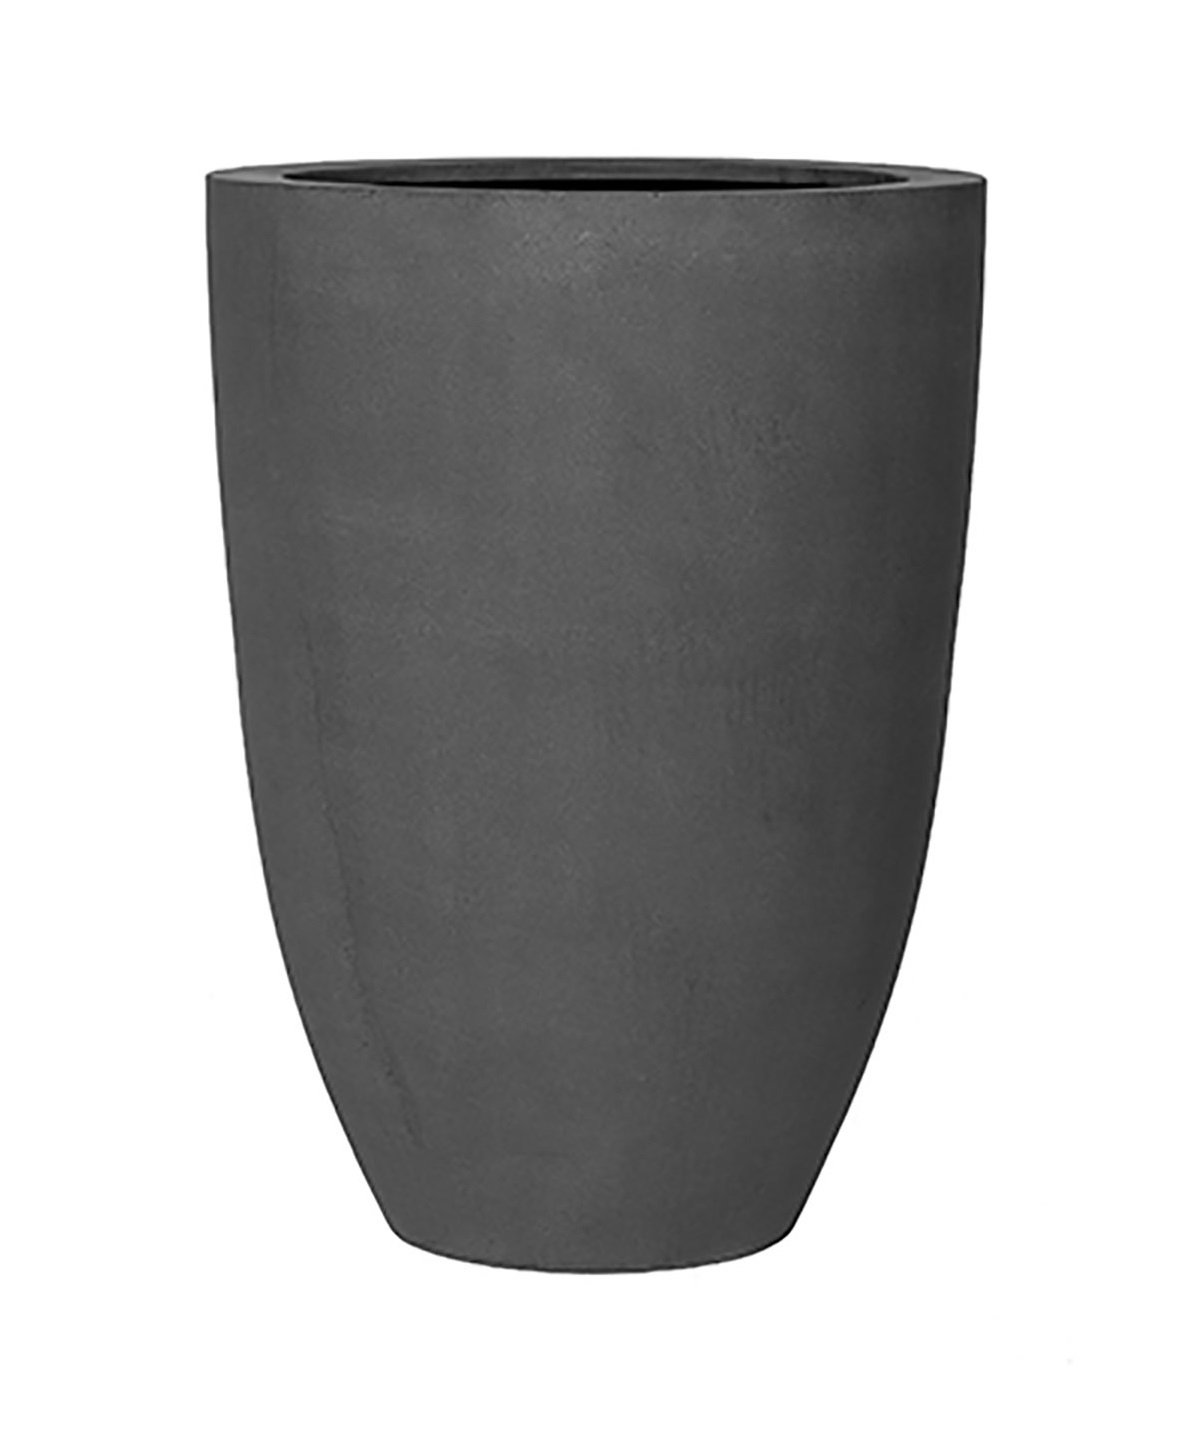 Ben XL Tall Gray Flower Planter Tapered Cylinder Fiberstone Vase 28'' H x 20.5'' W - By Pottery Pots by Pottery Pots